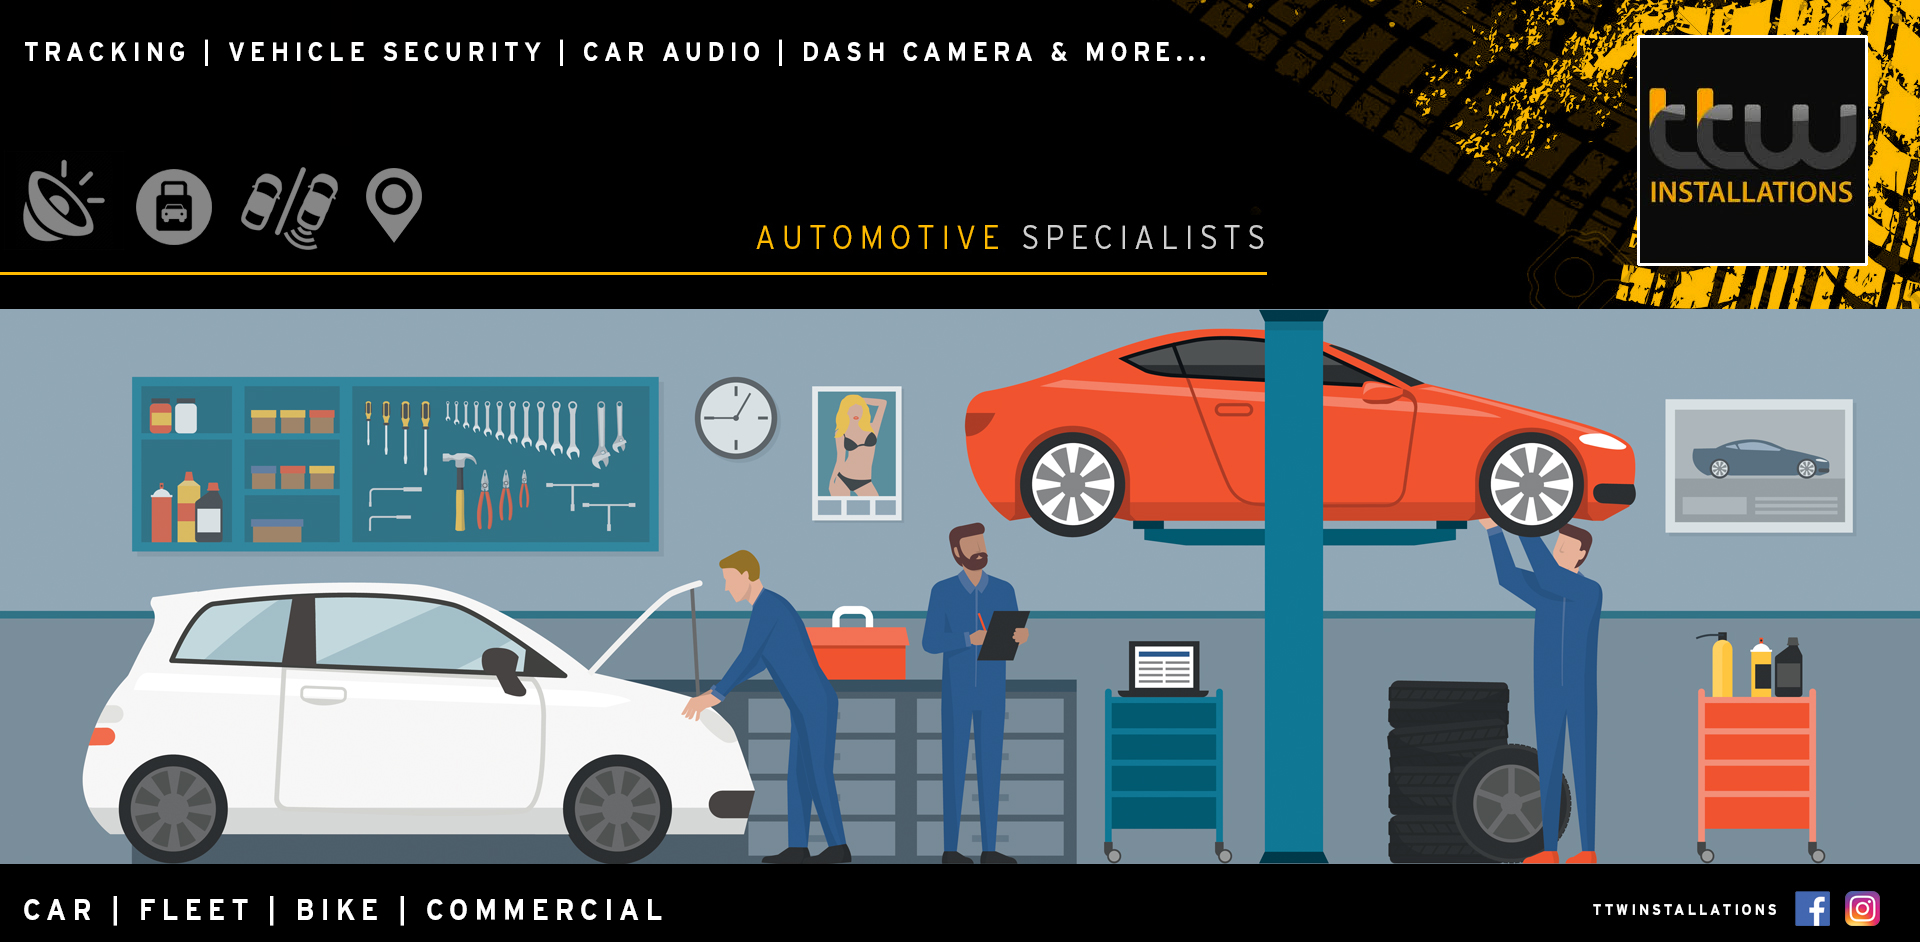 TTW Installations - Automotive Installation & Security Experts - Autowatch Ghost - Vehicle Tracking - Van Security - Vehicle Car Audio - Tow bars - Dual Controls - Window Tints - Nottingham - Derby  - UK